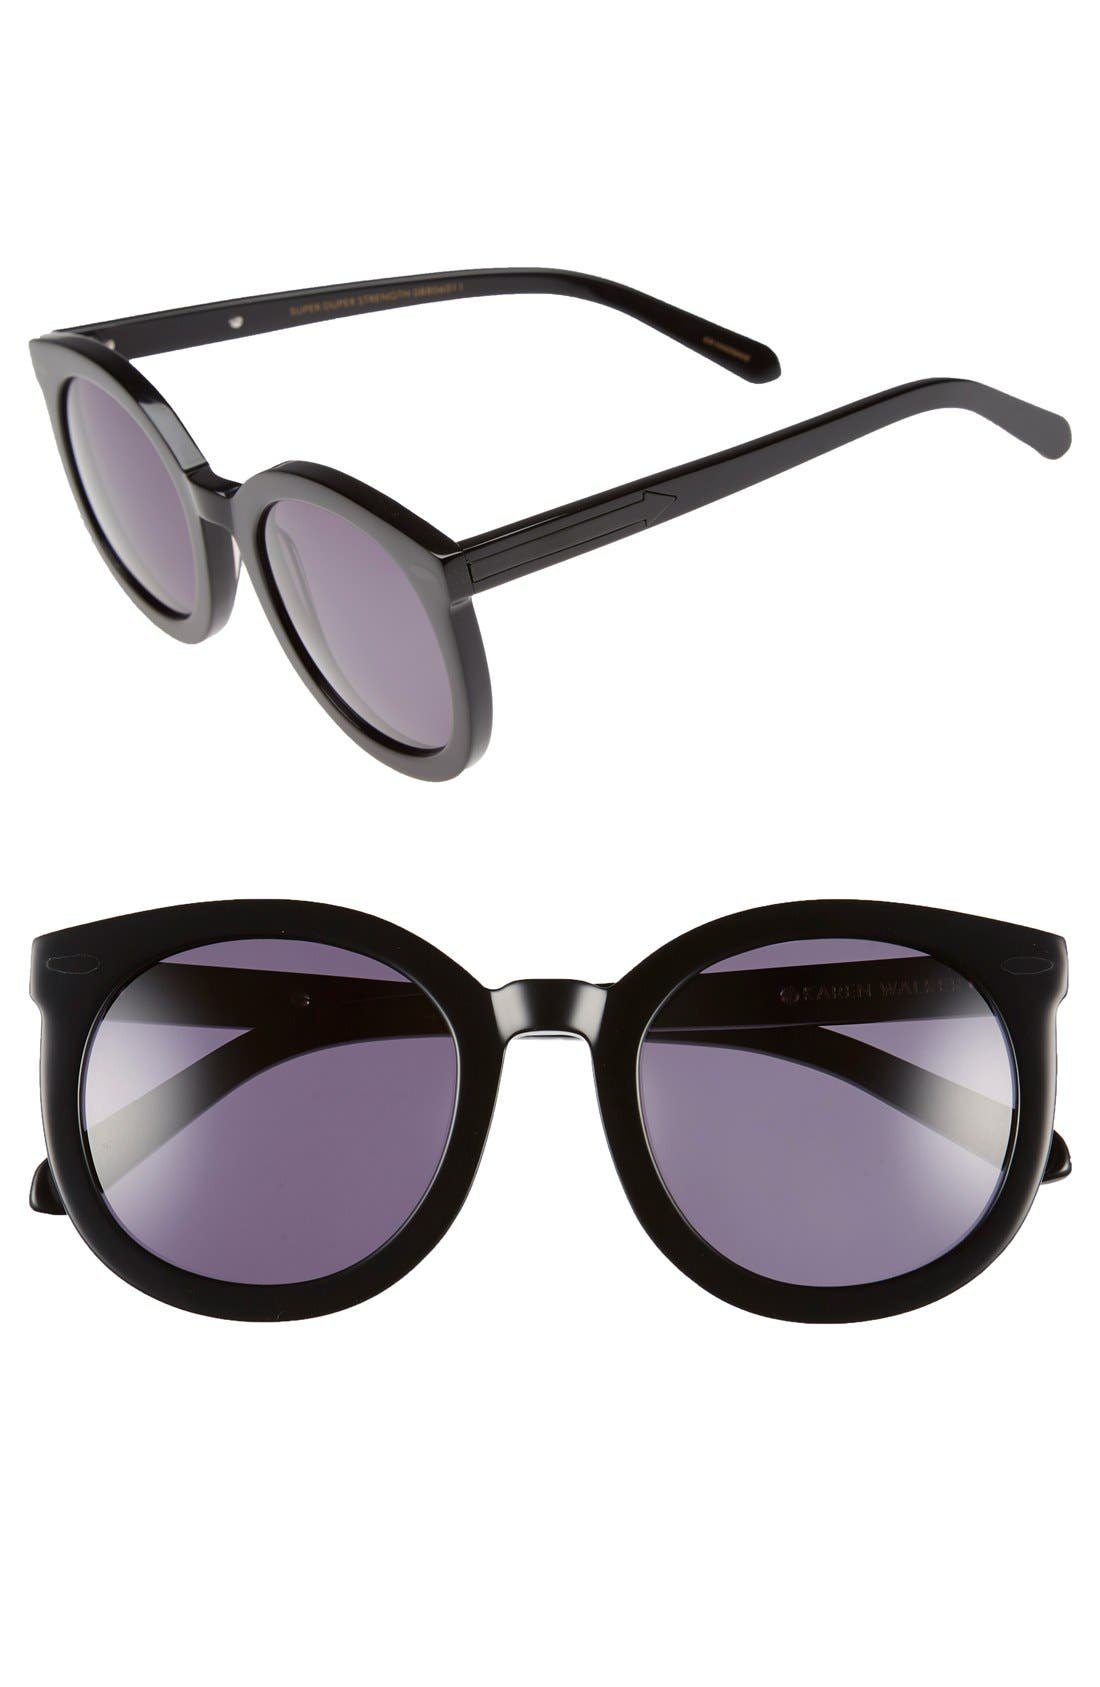 KAREN WALKER, Super Duper Strength 55mm Sunglasses, Main thumbnail 1, color, 001